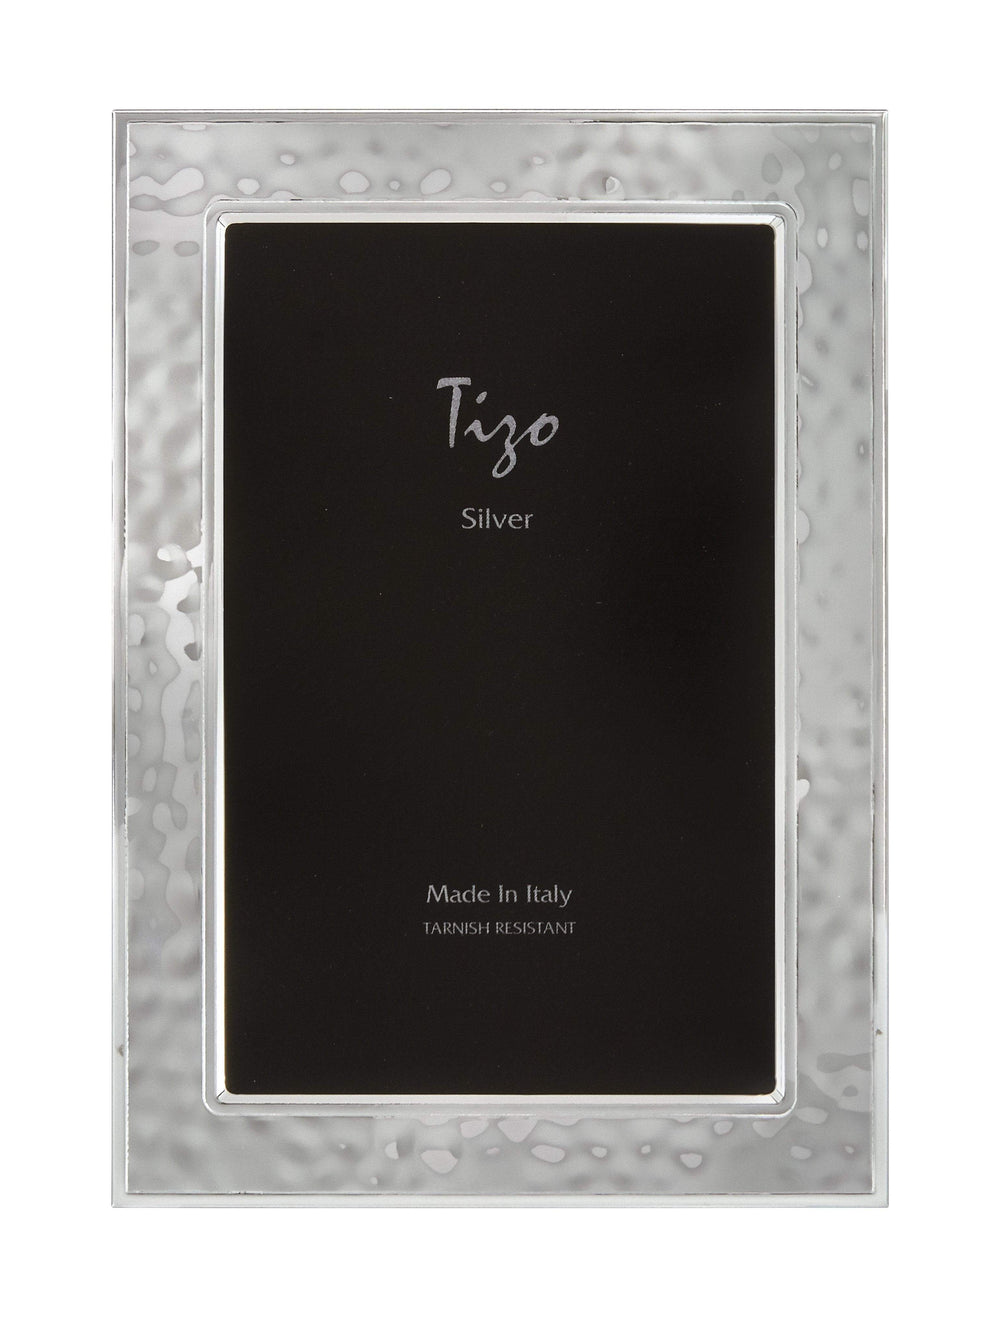 Tizo 5x7 Hammered Silverplate Frame